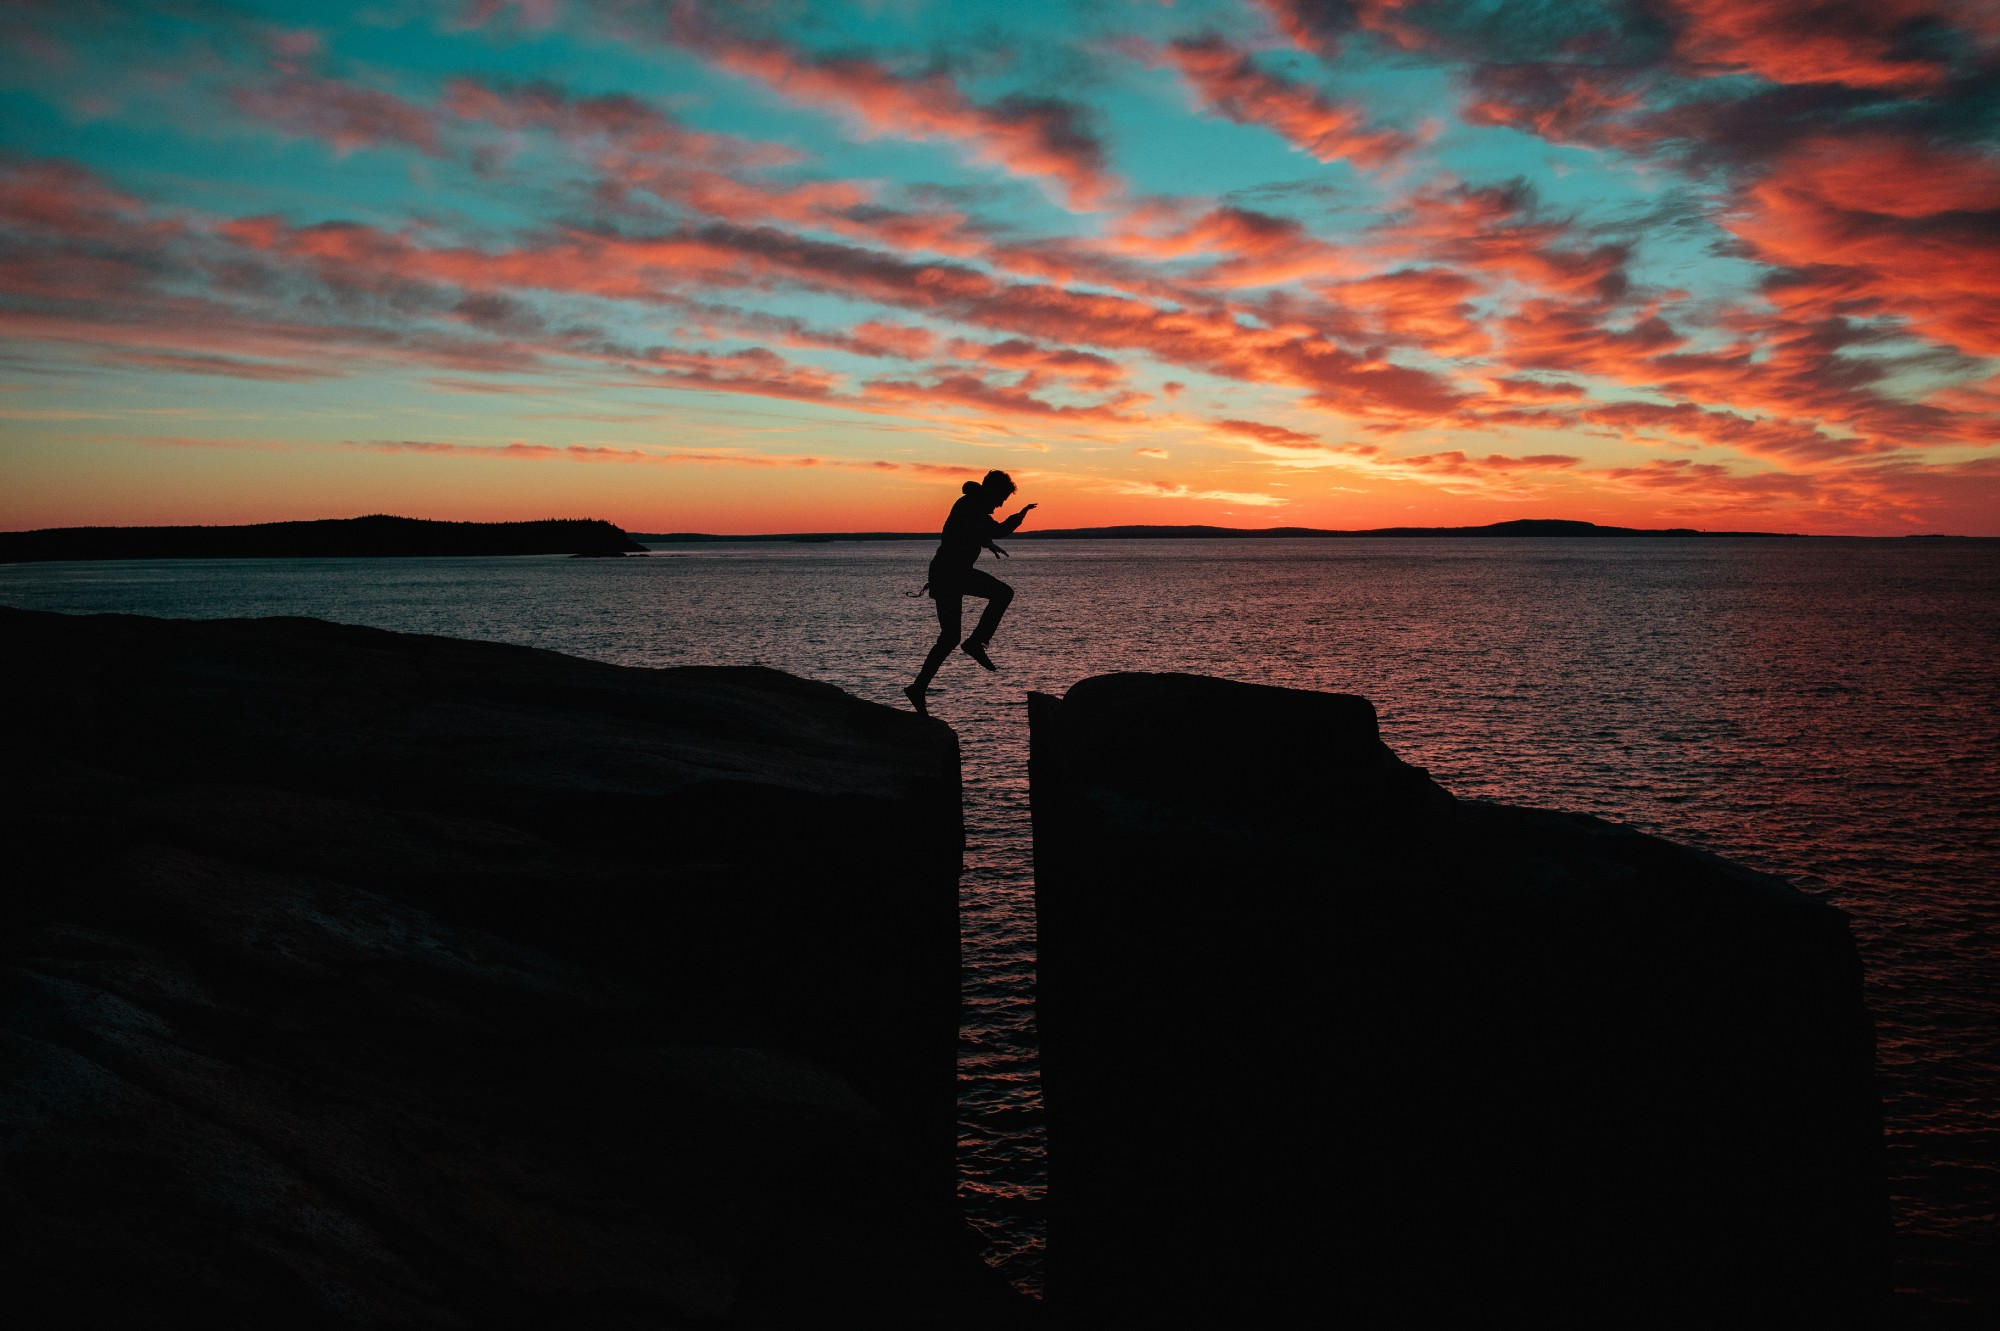 A person jumping from one rock on another.